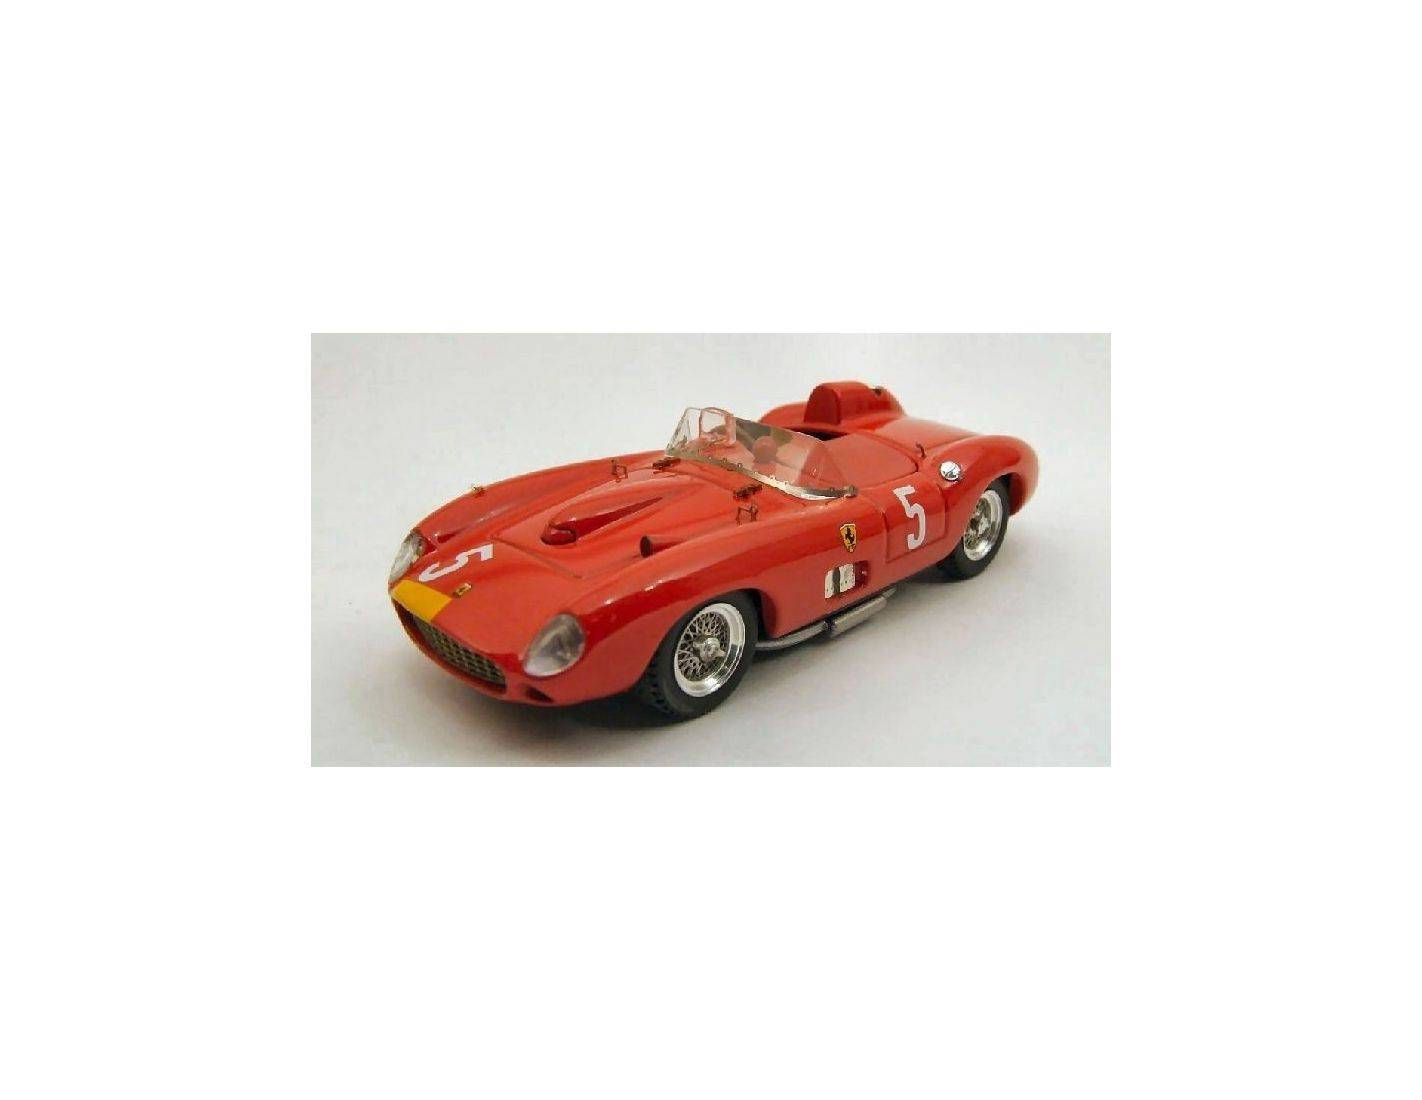 Art Model AM0134 FERRARI 315 S N.5 2nd NURBURGRING 1957 COLLINS-GENDEBIEN 1:43 Modellino